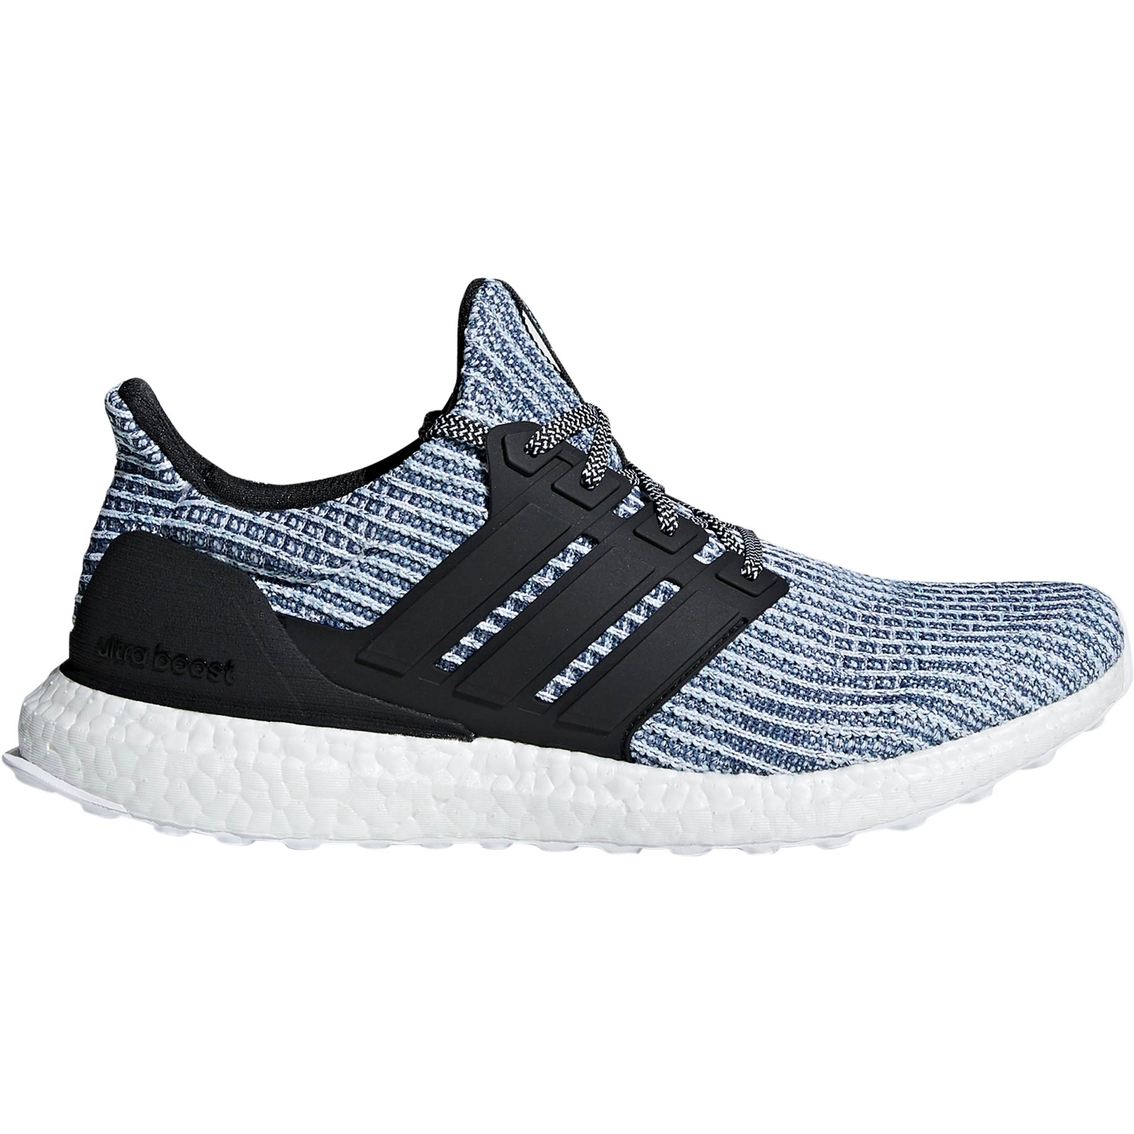 48cbdba337e coupon code for adidas campus 80s black1 black1 chalk2 d09434124s ad4ee  9f5f8  low price adidas mens ultraboost parley running shoes 045e7 3996c